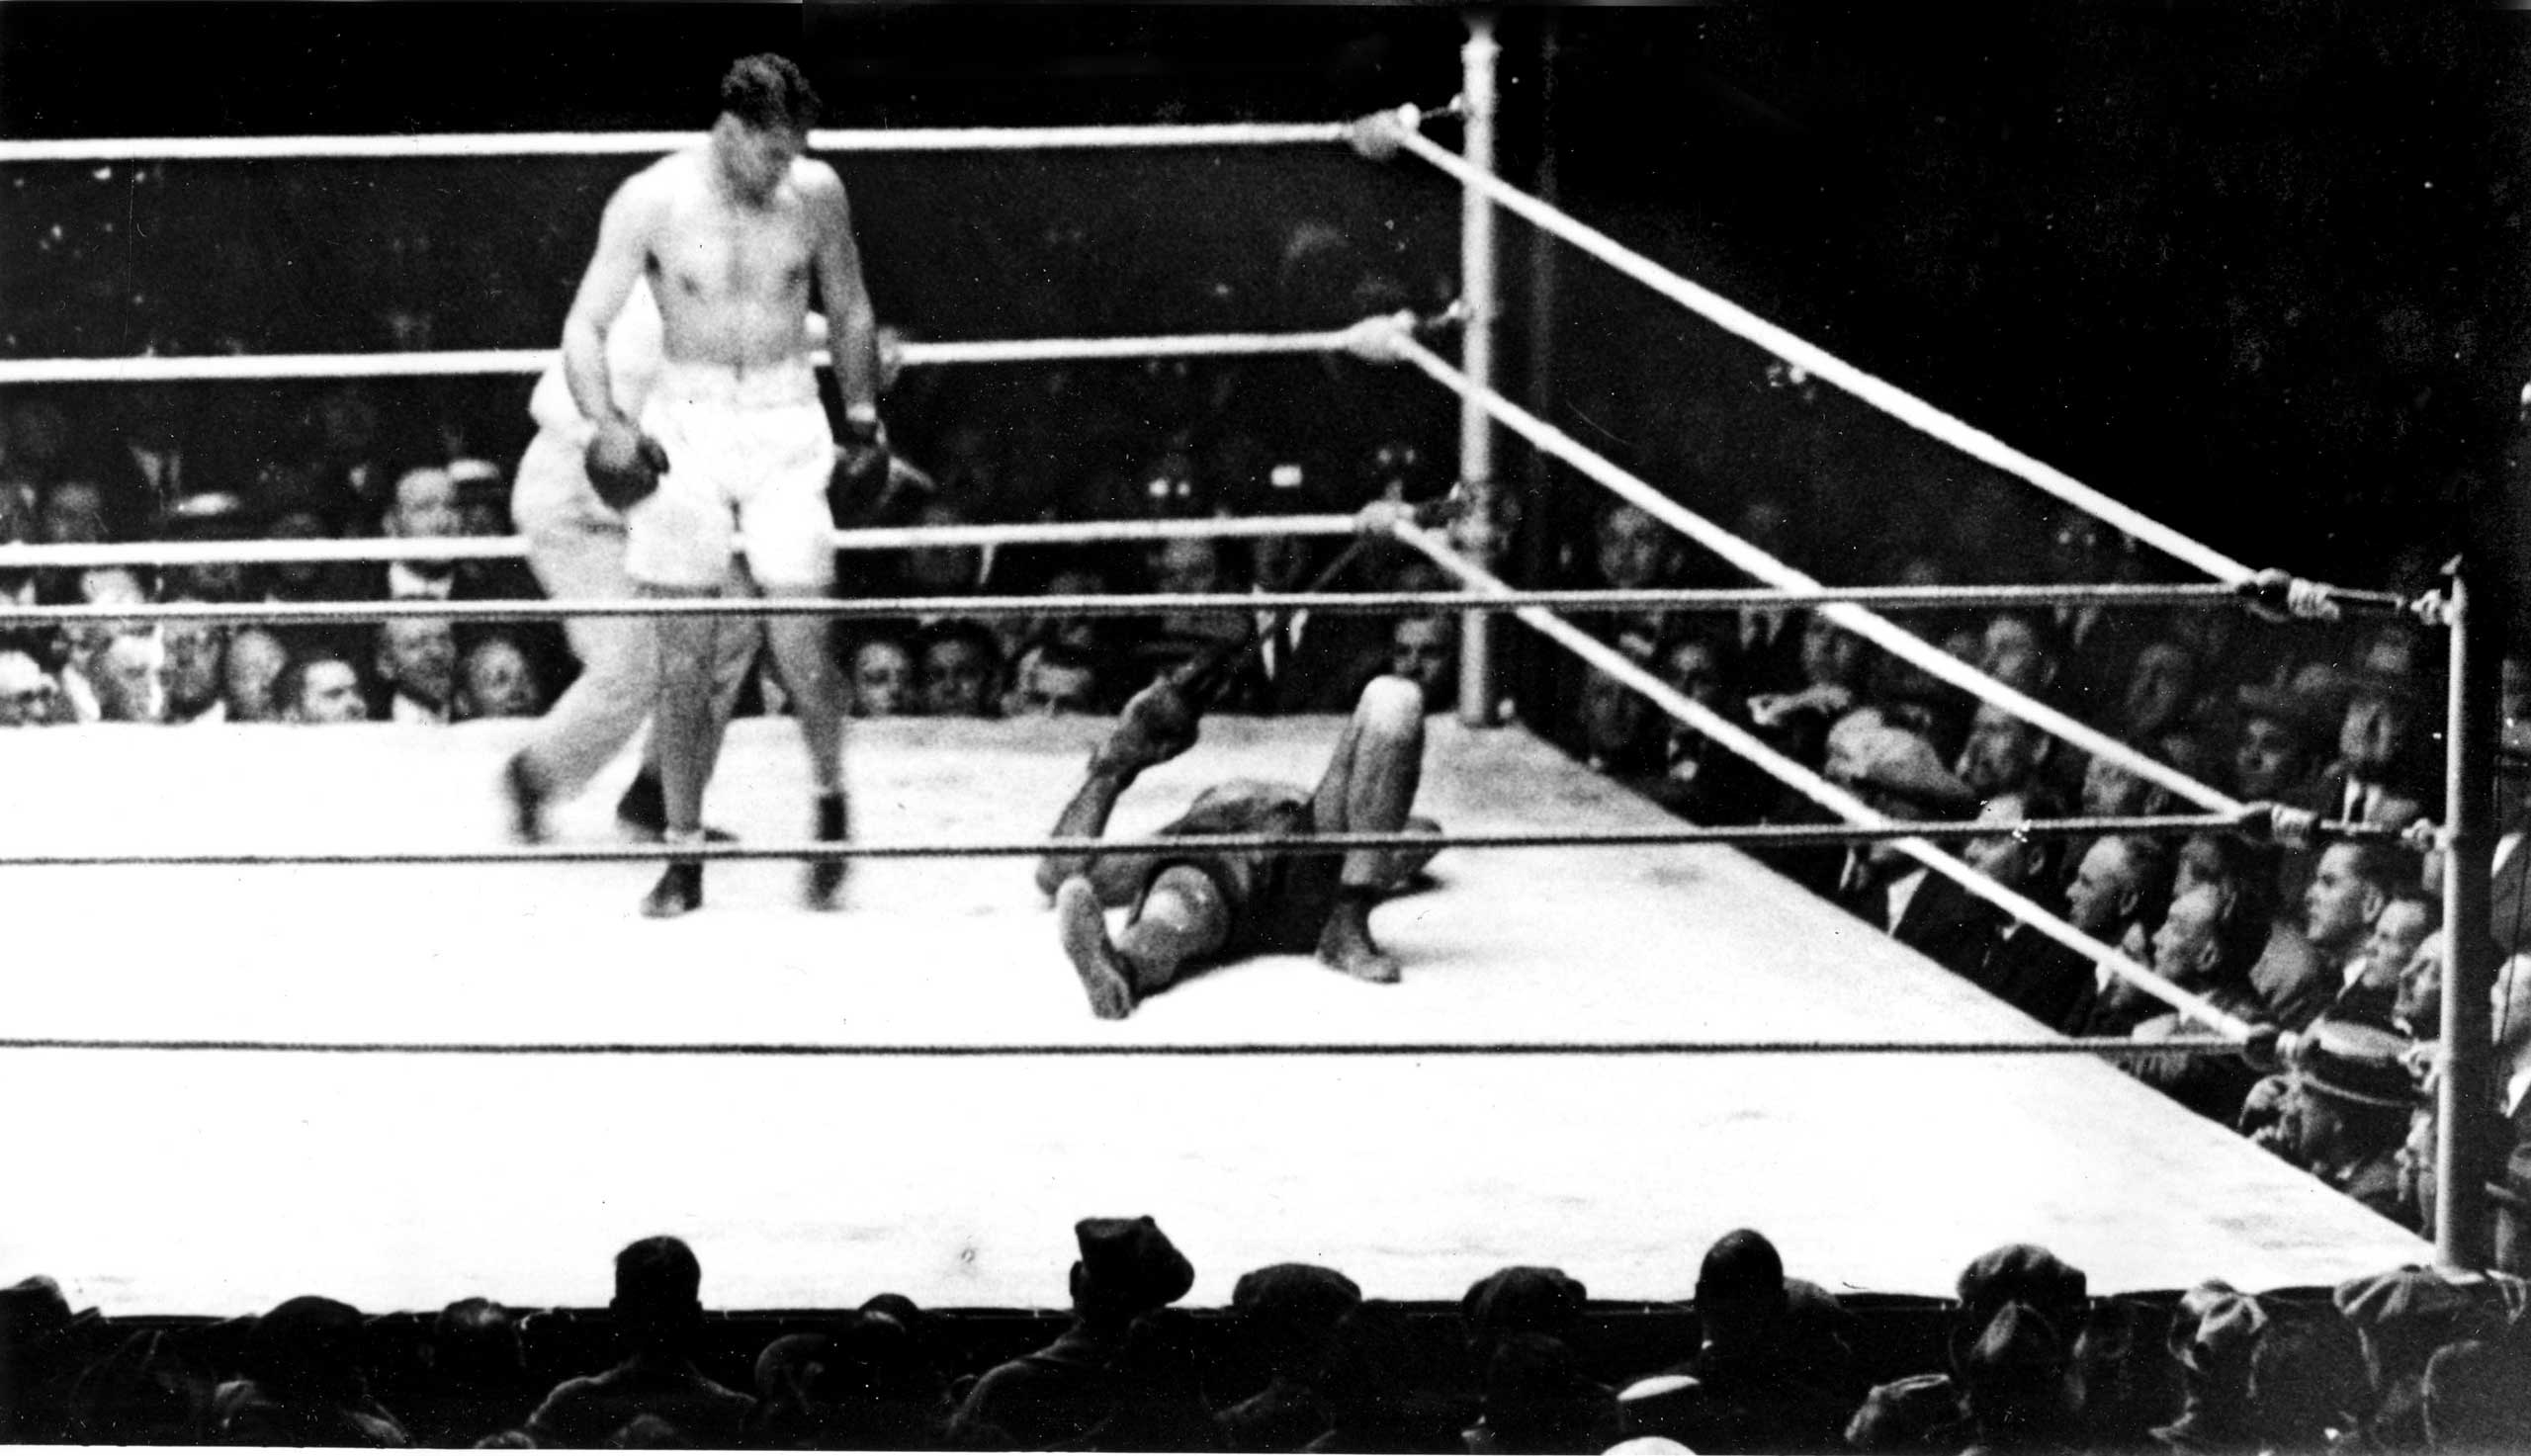 "<b>Jack Dempsey vs. Luis Angel Firpo, Sept. 14, 1923</b> Short and sweet. That's how you'd have to describe heavyweight champ Jack Dempsey's defense of his title against Luis Angel Firpo, the ""Wild Bull"" of the Pampas, before 80,000 people at the Polo Grounds in New York. Dempsey floored Firpo seven times, with Firpo knocking Dempsey clean out of the ring — and that was just the first round (there was no three knockdown rules back then. Indeed, Dempsey was allowed to stand over the fallen fighter and immediately knock Firpo down again, as there wasn't a rule about going to a neutral corner either). Conspiracy theorists believe that Firpo was denied a valid victory in the first round as Dempsey was helped back into the ring by the writers at ringside and the referee was accused of counting incredibly slowly. Nevertheless, after 11 total knockdowns between the pair, Dempsey won by KO in the second. The fight was also important from a historical perspective because it was the first time that a Latin American boxer would fight for the world heavyweight title."